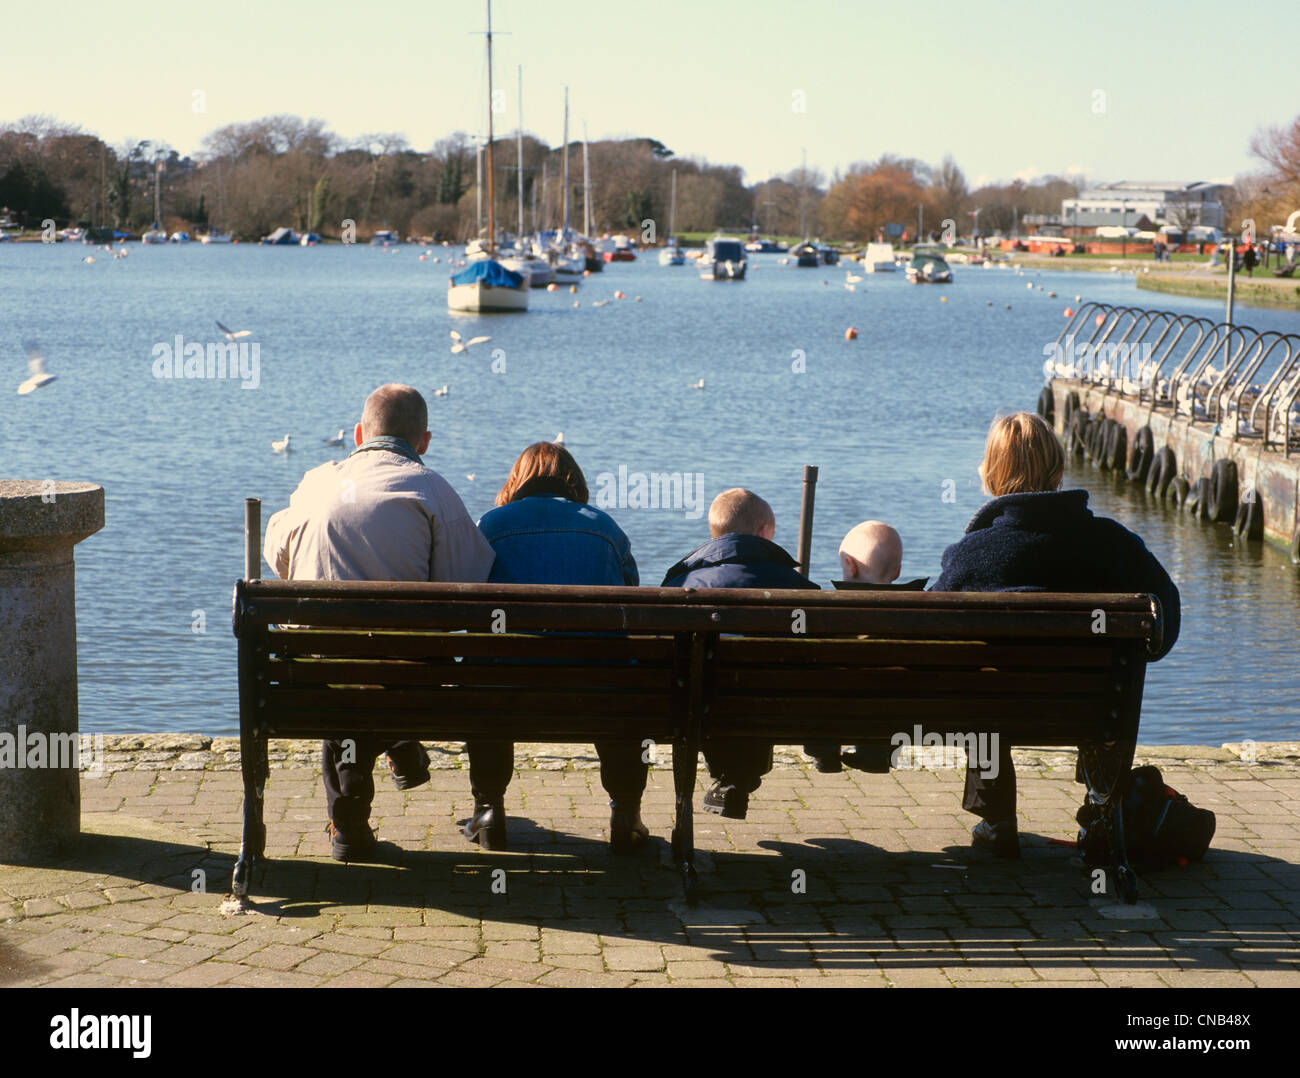 Christchurch Dorset Quayside Family picnicking - Stock Image